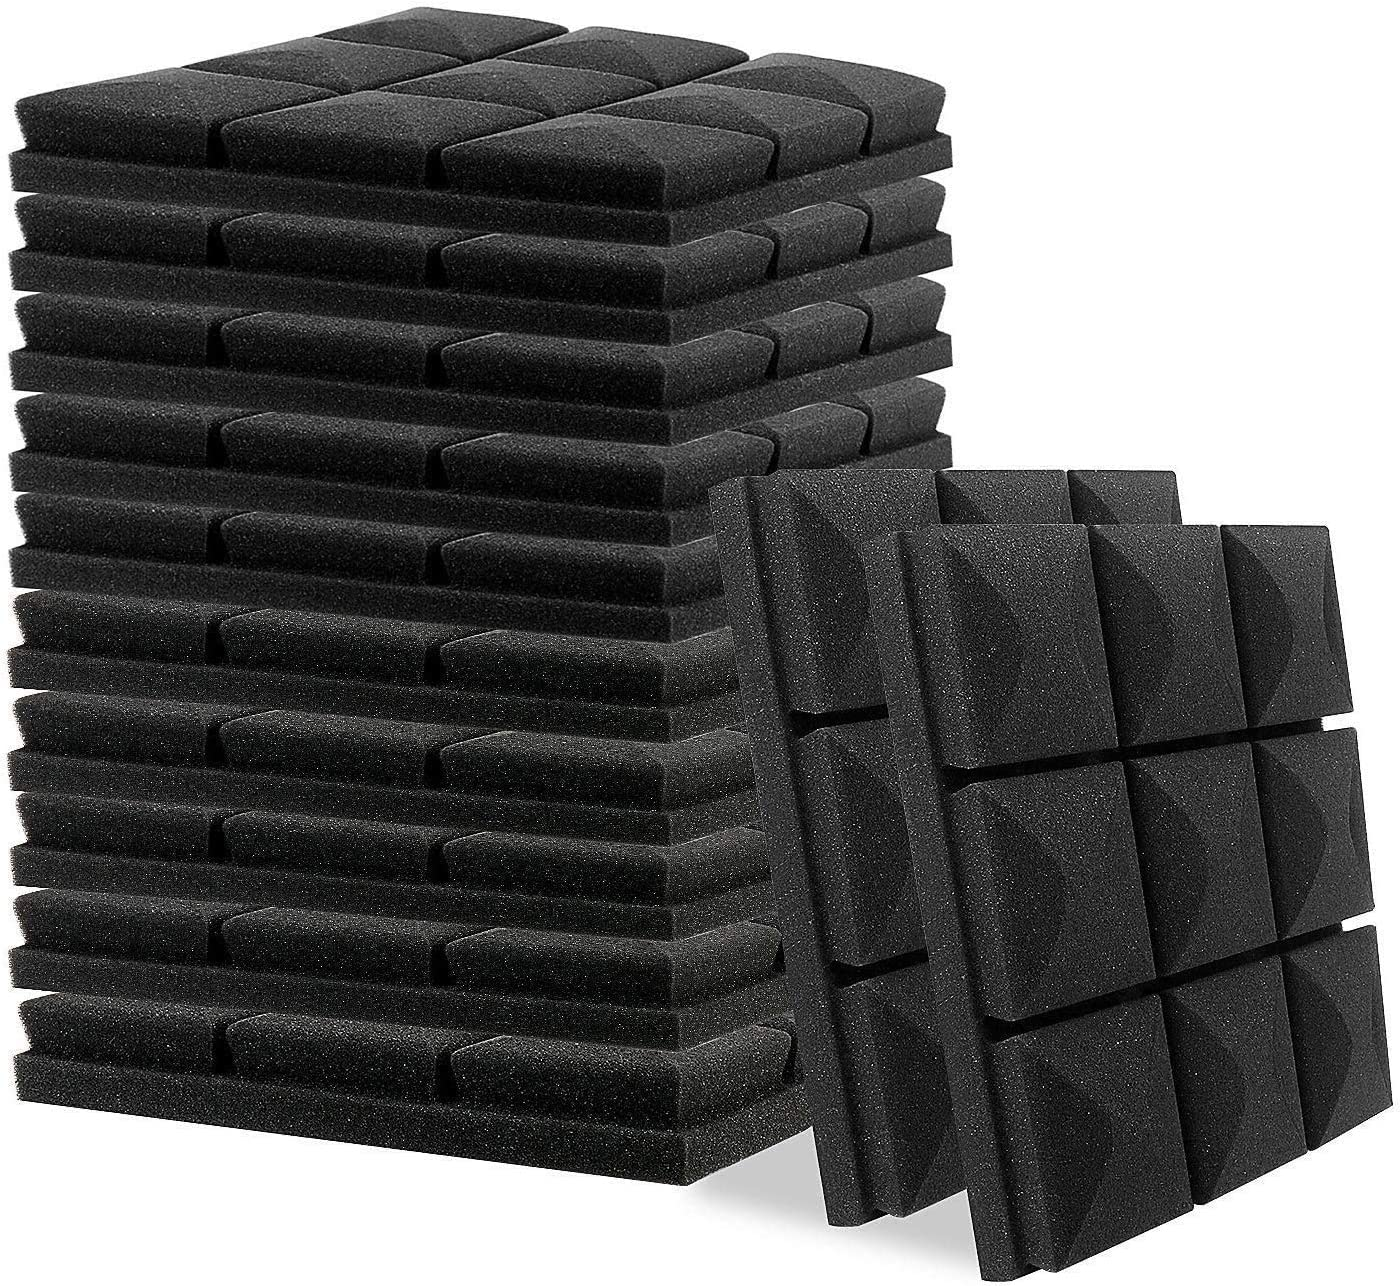 "Little-Lucky Acoustic Foam Panels, 12 Pack Set 2"" X 12"" X 12"" Studio Wedge Tiles, Sound Absorber Soundproofing Wall Foam Acoustic Panels Control Sound Dampening Foam (12Pack, Black)"